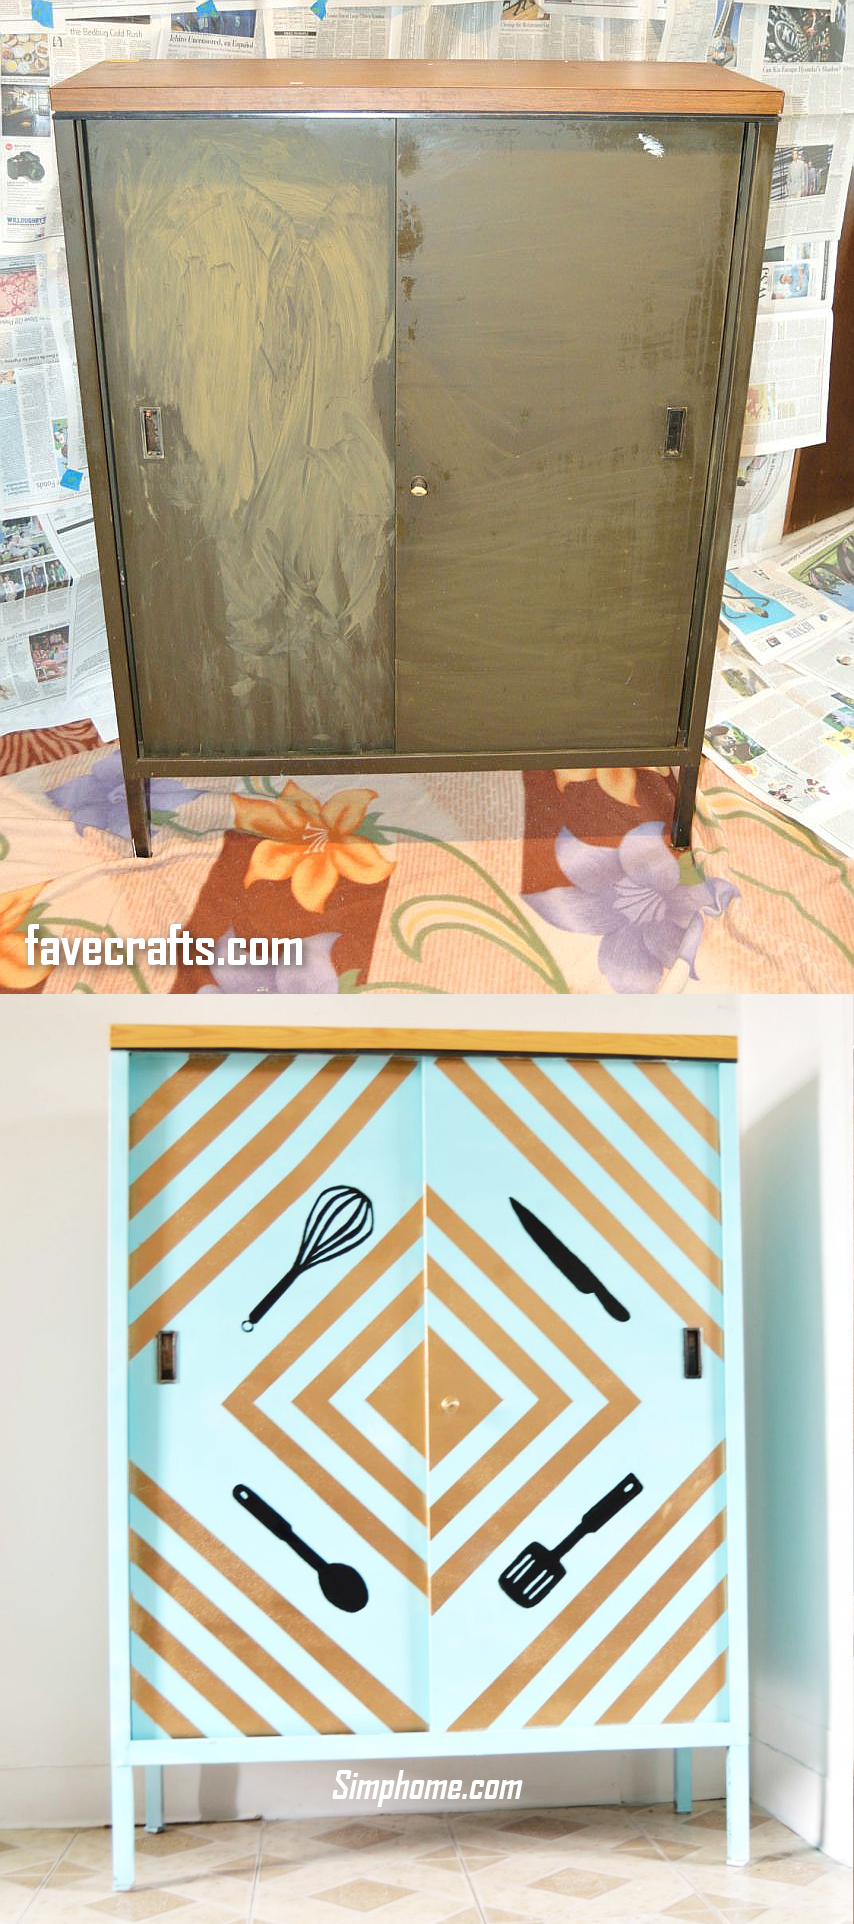 5. Crafty Kitchen Cabinet Makeover via Simphome.com